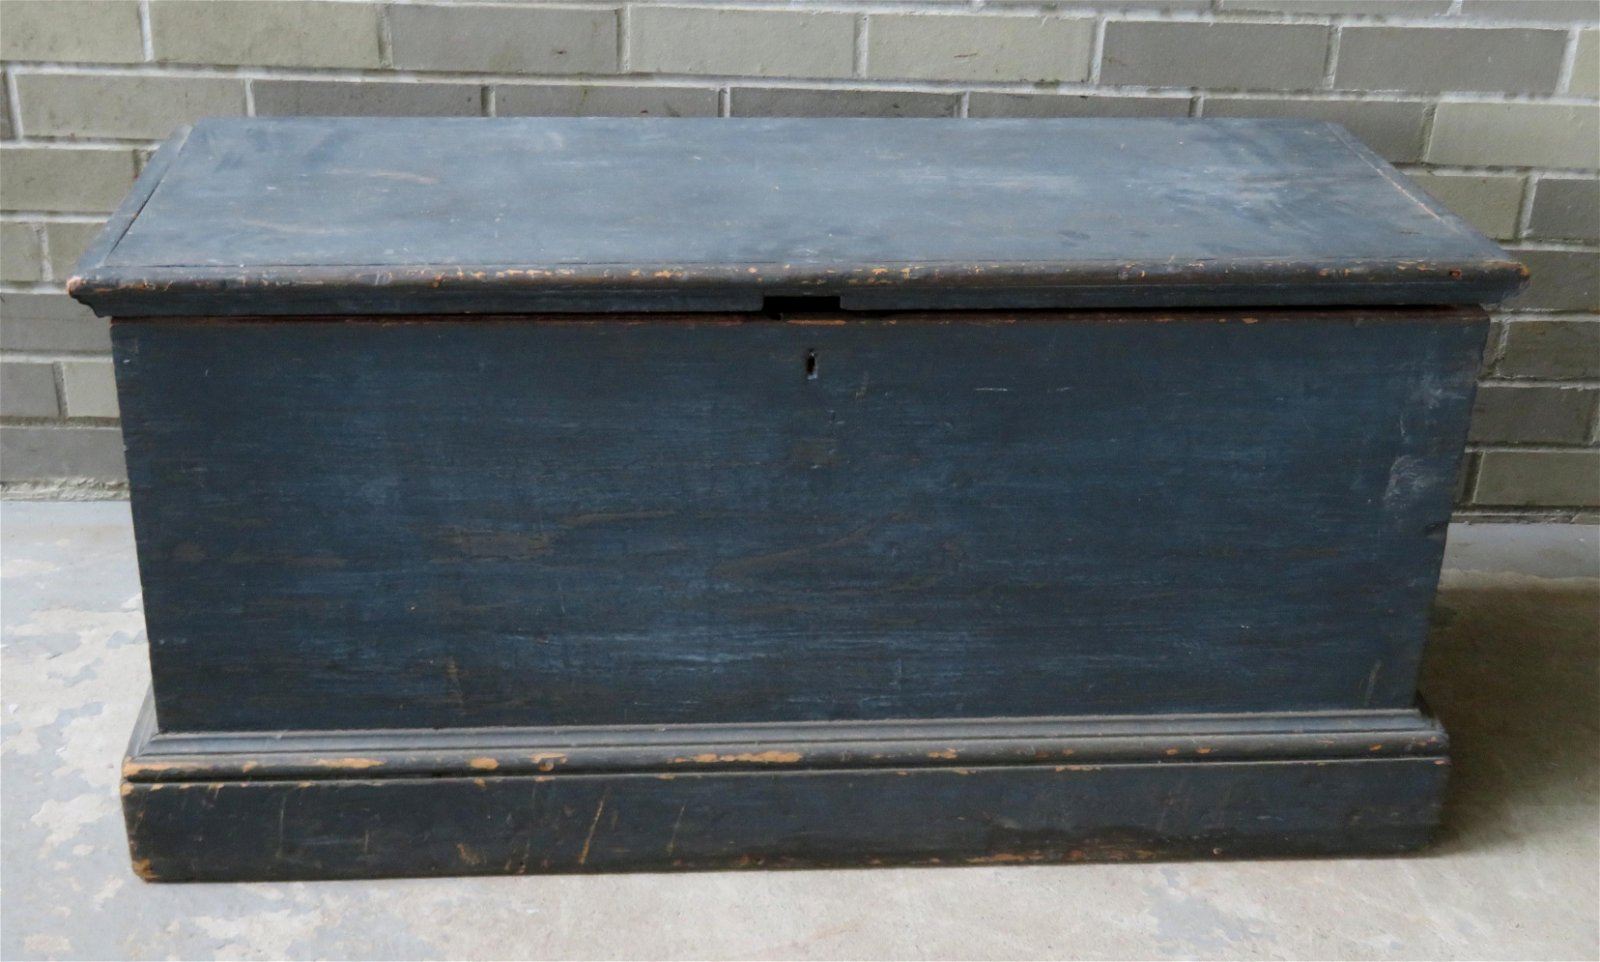 Early blanket box in blue/gray paint that appears to be